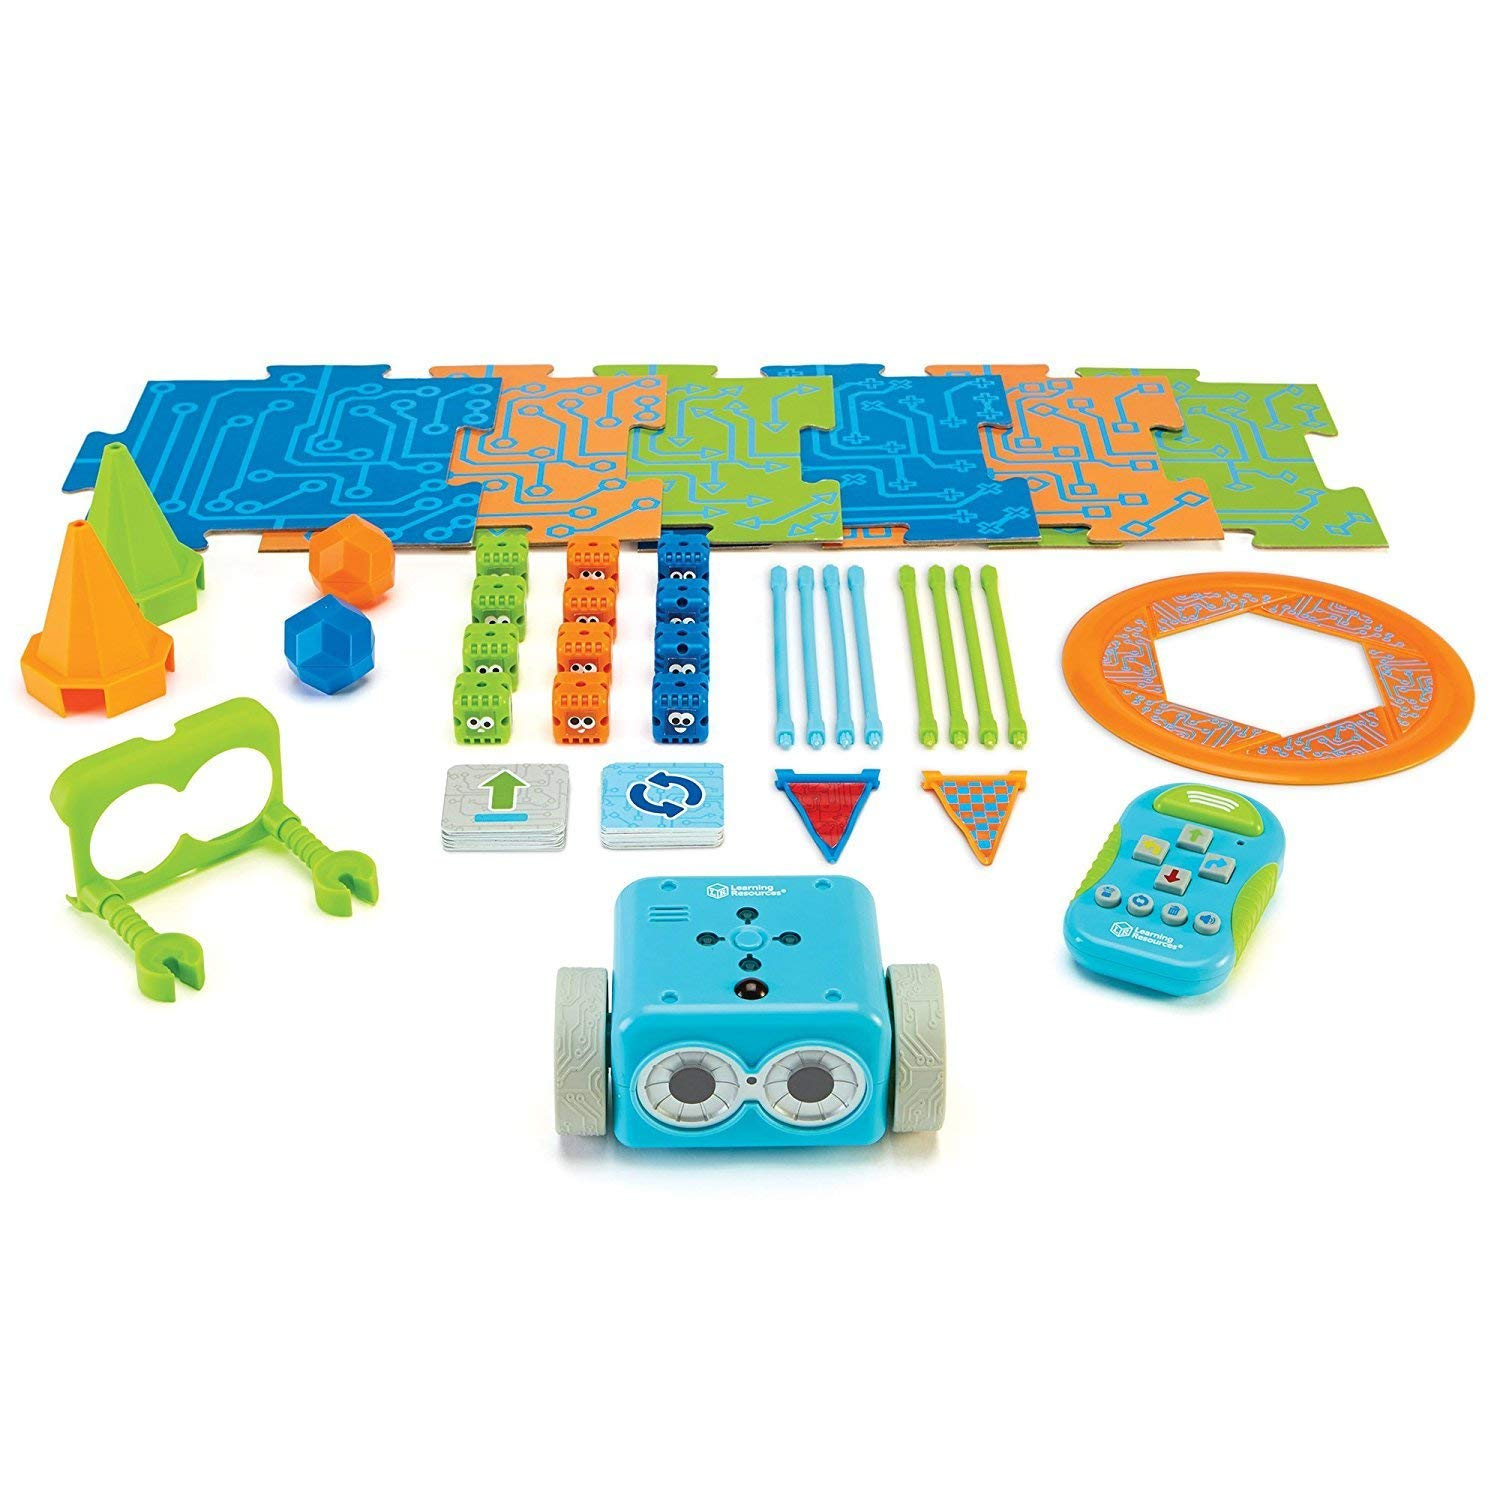 1.Botley the Coding Robot Activity Set